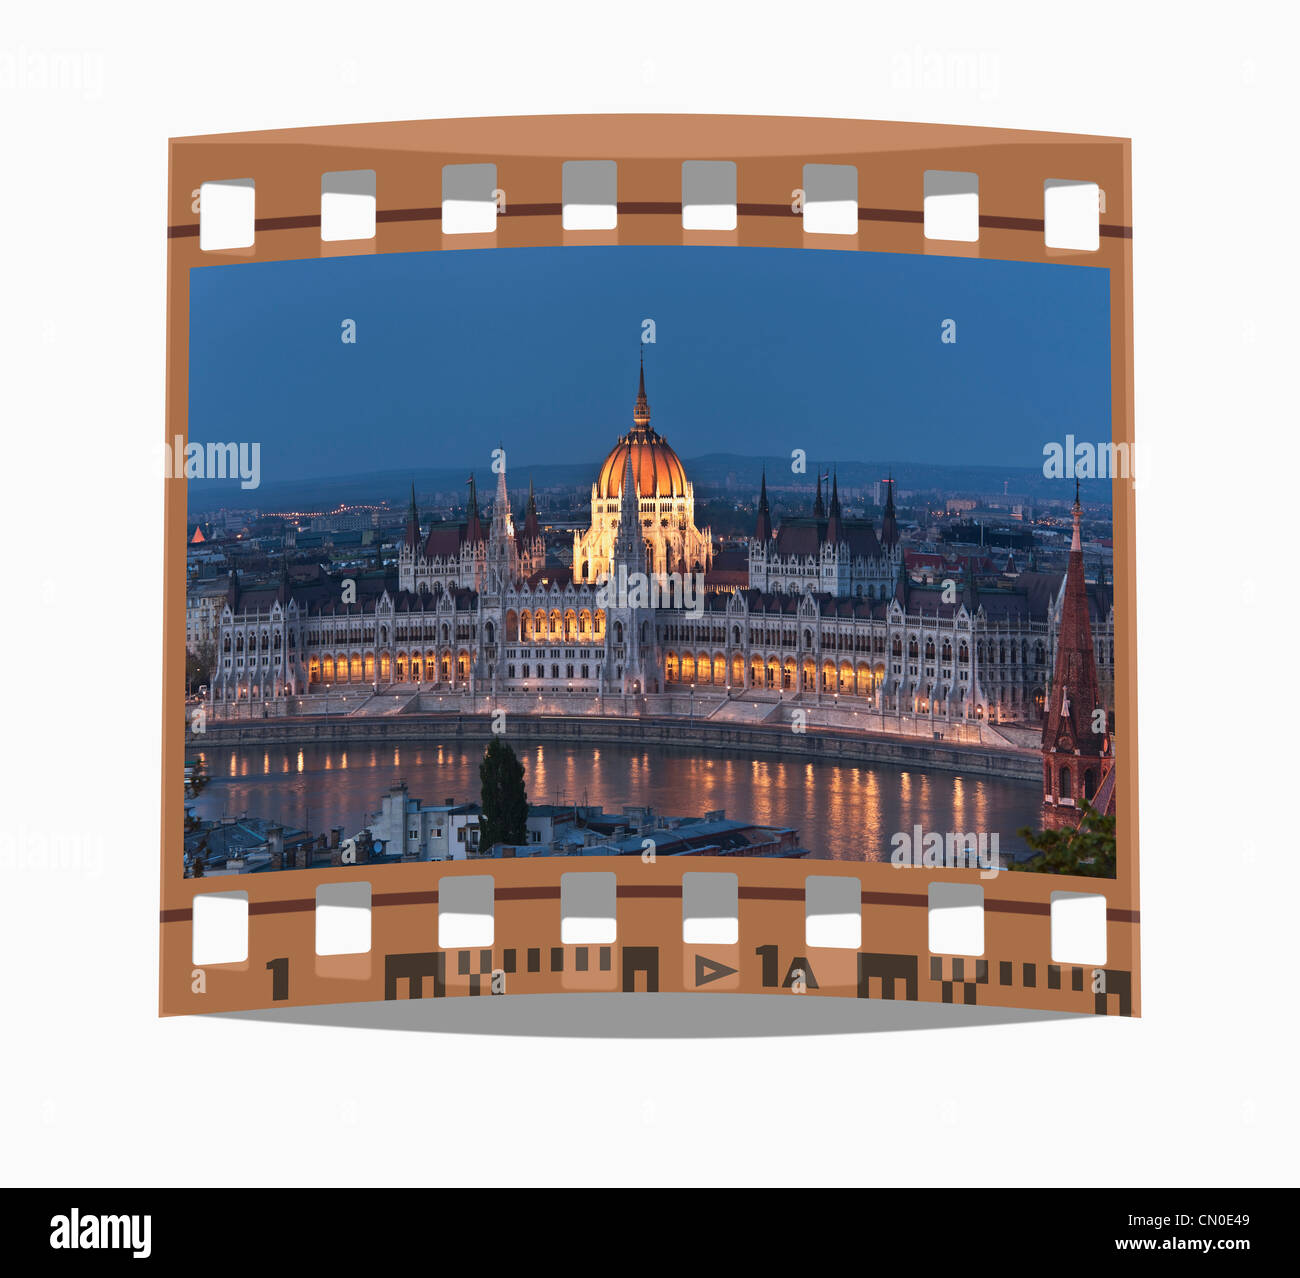 Filmstrip: world largest Parliament, built from 1885-1904,  Budapest, Hungary, Europe. - Stock Image